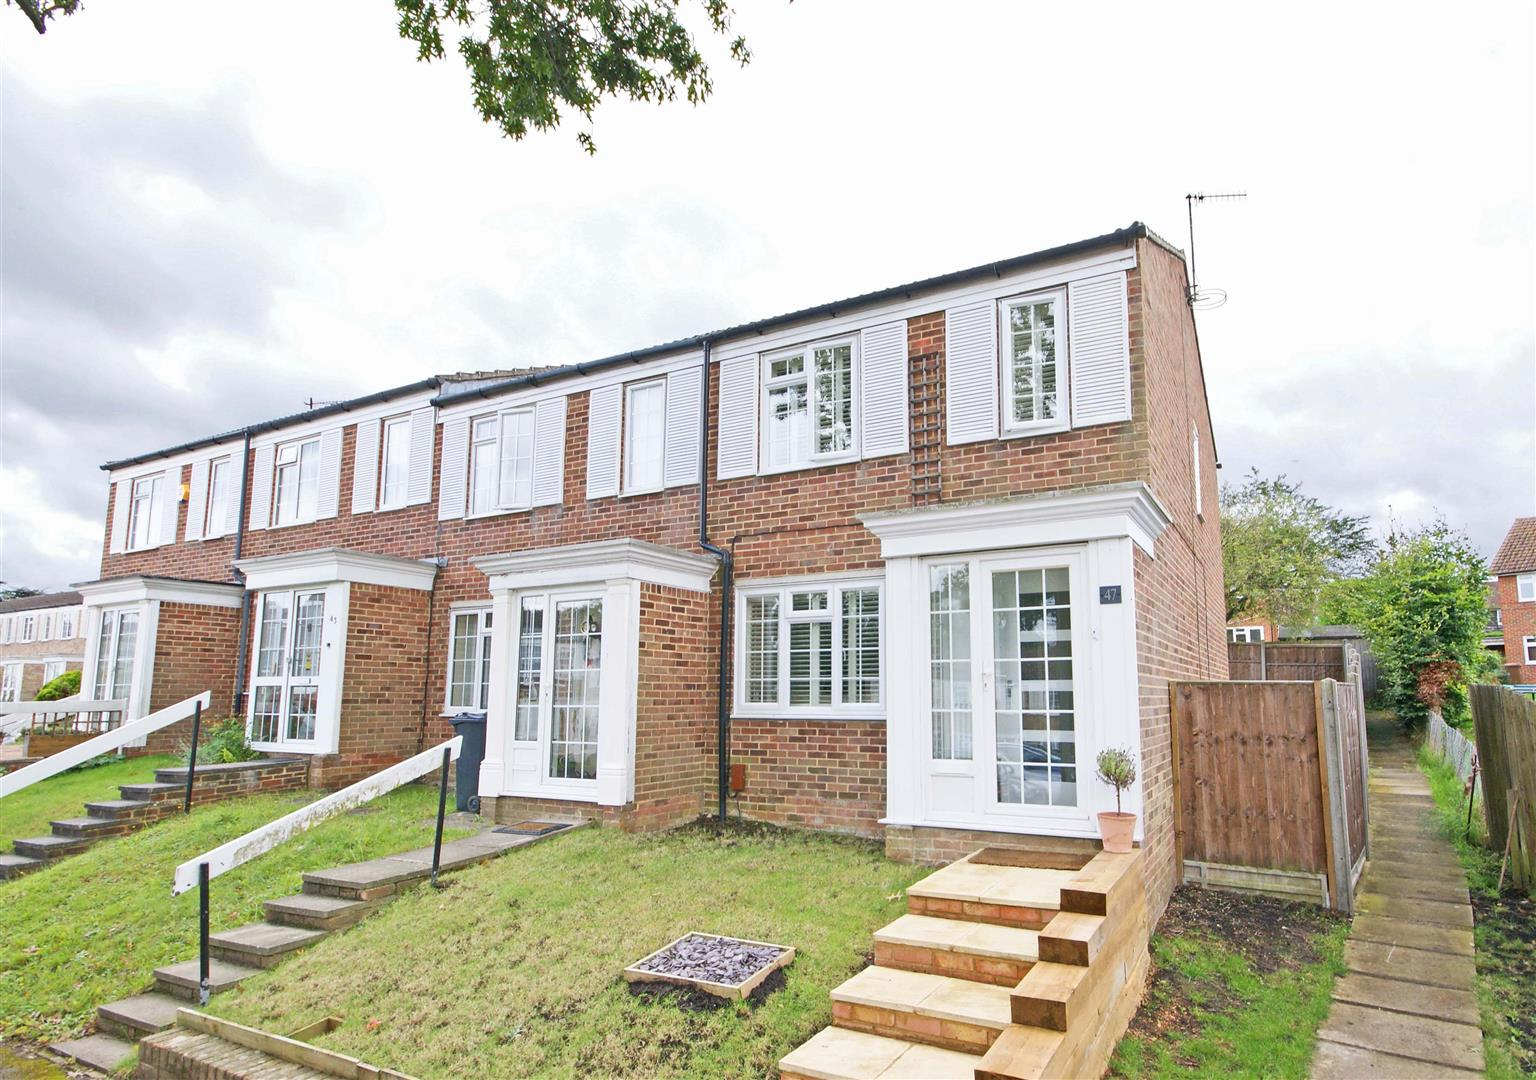 3 Bedroom End Of Terrace House For Sale Goodwood Road Redhill Surrey Rh1 2hh